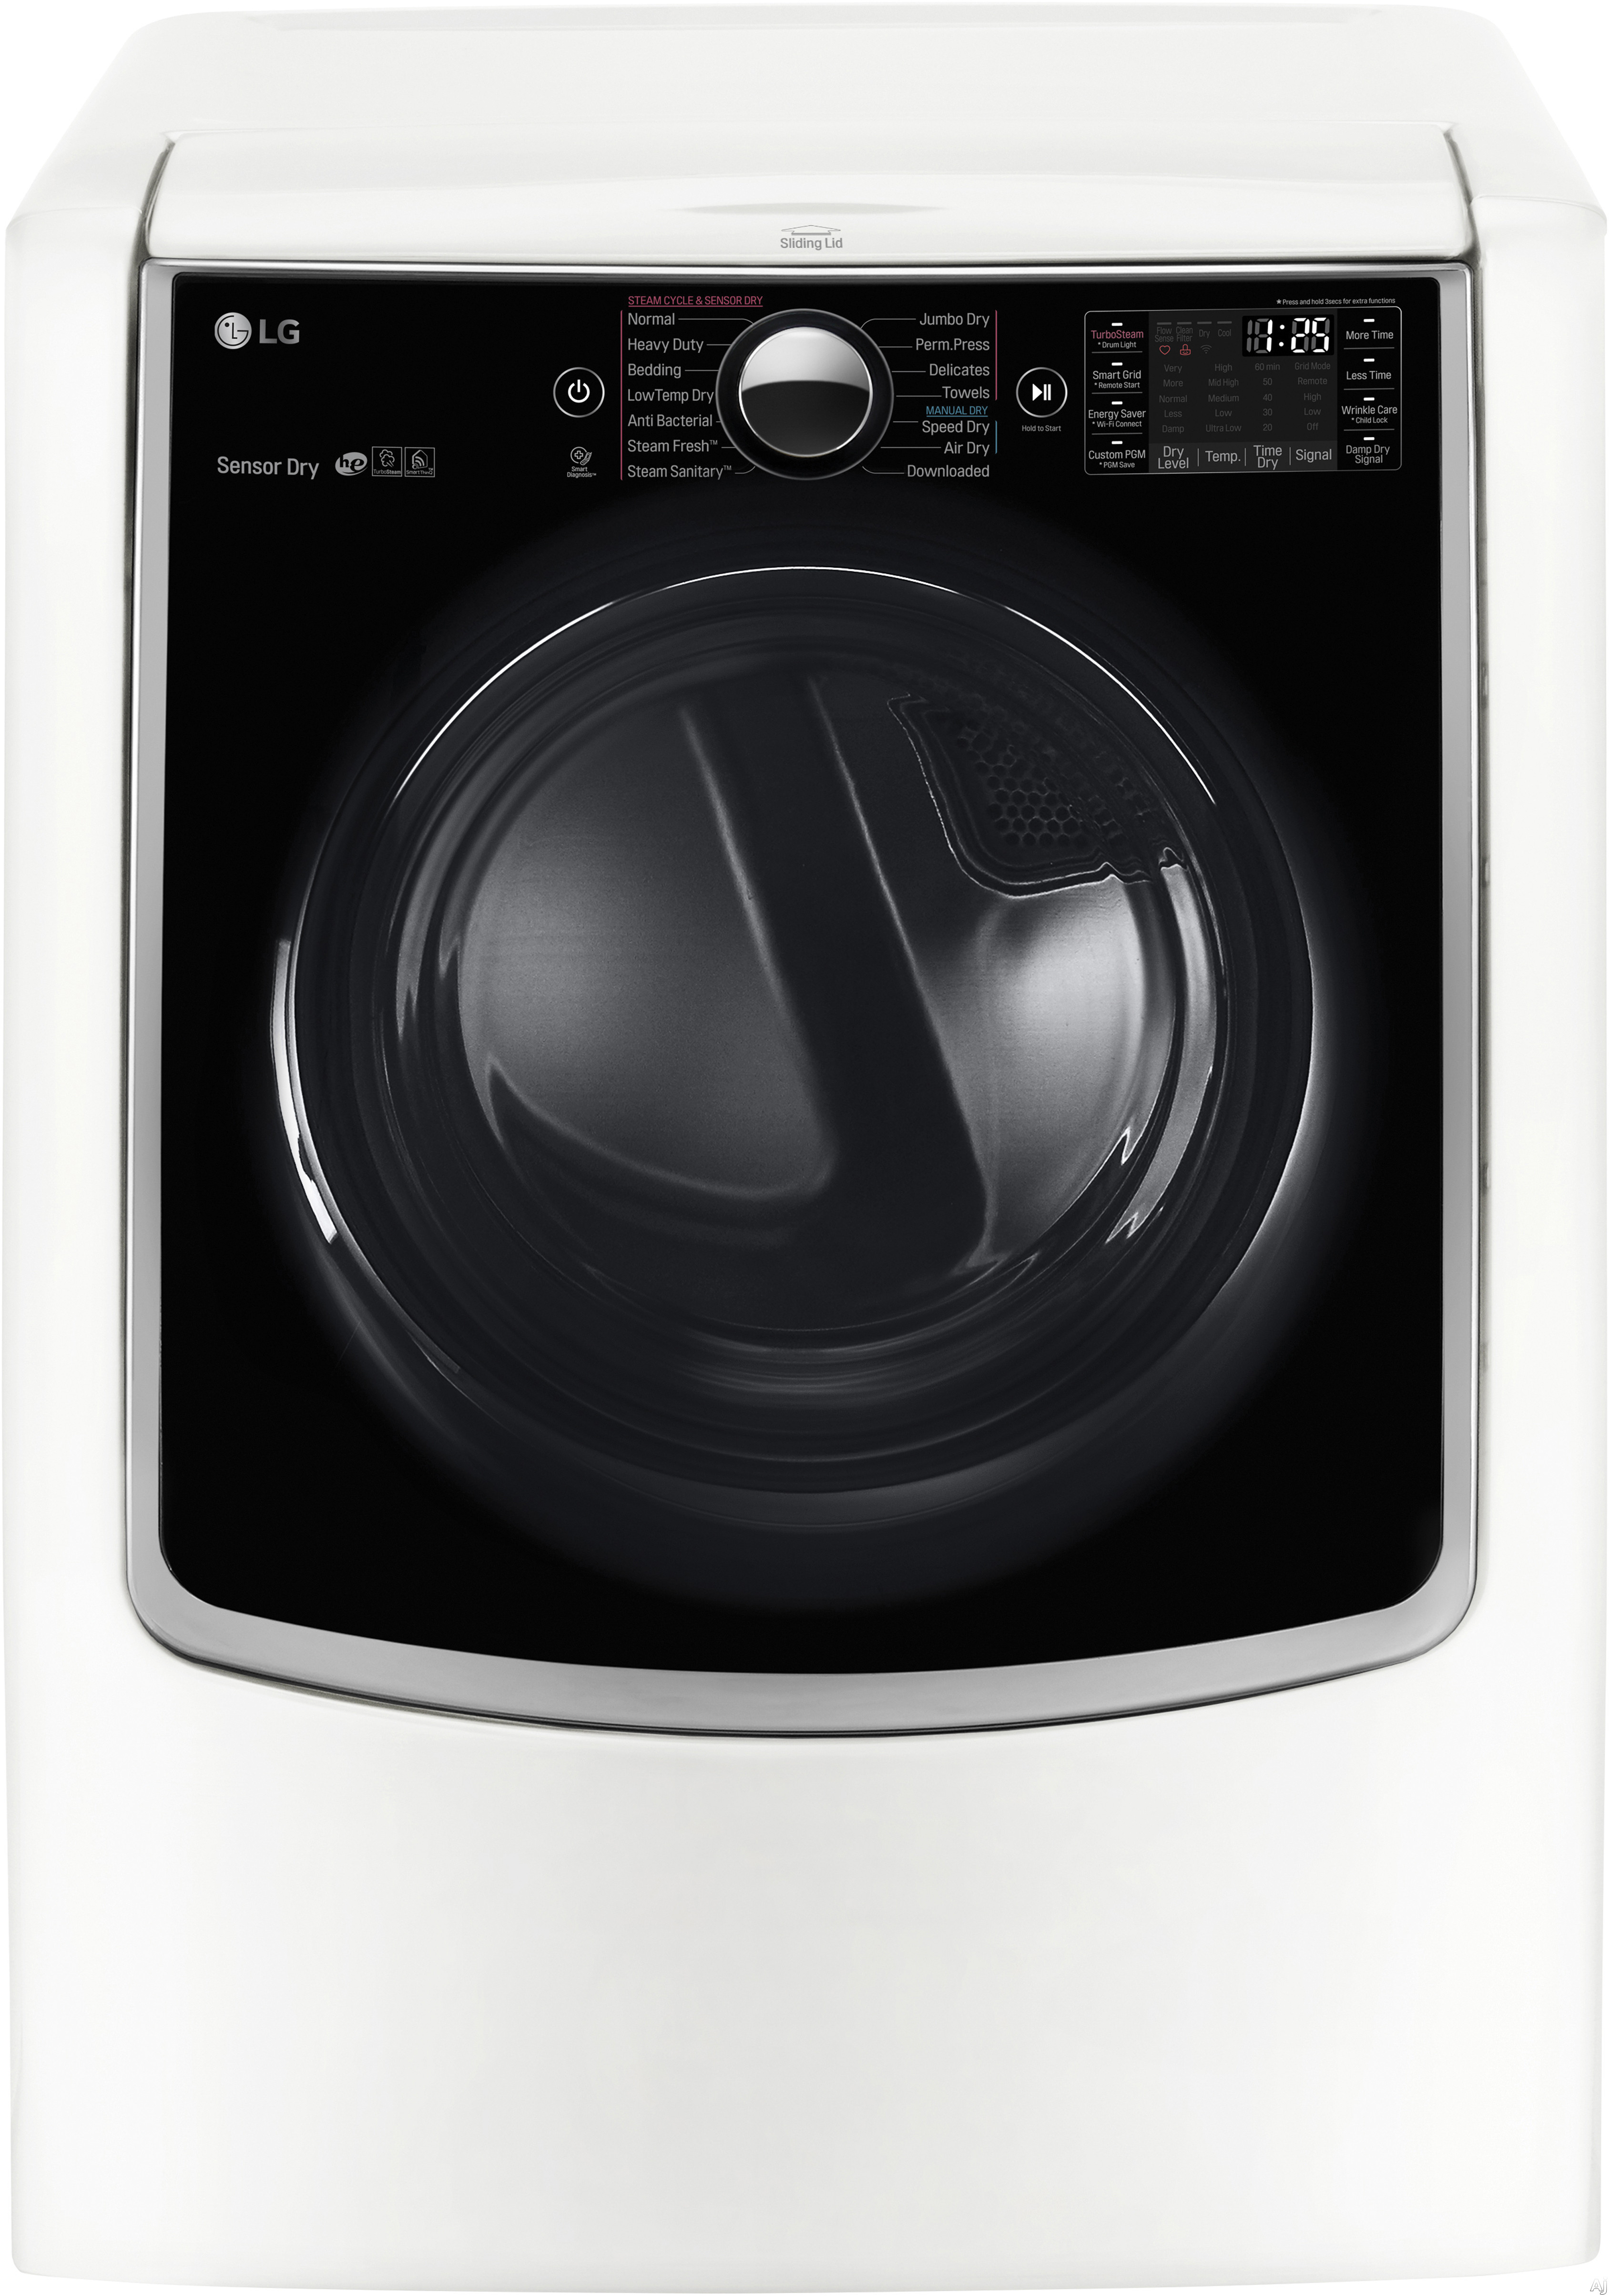 LG TurboSteam Series DLEX9000W 29 Inch 9.0 cu. ft. Electric Dryer with Sensor Dry Smart ThinQ Wi Fi Wrinkle Care 14 Dry Cycles 5 Temperature Selections and ENERGY STAR Qualification White